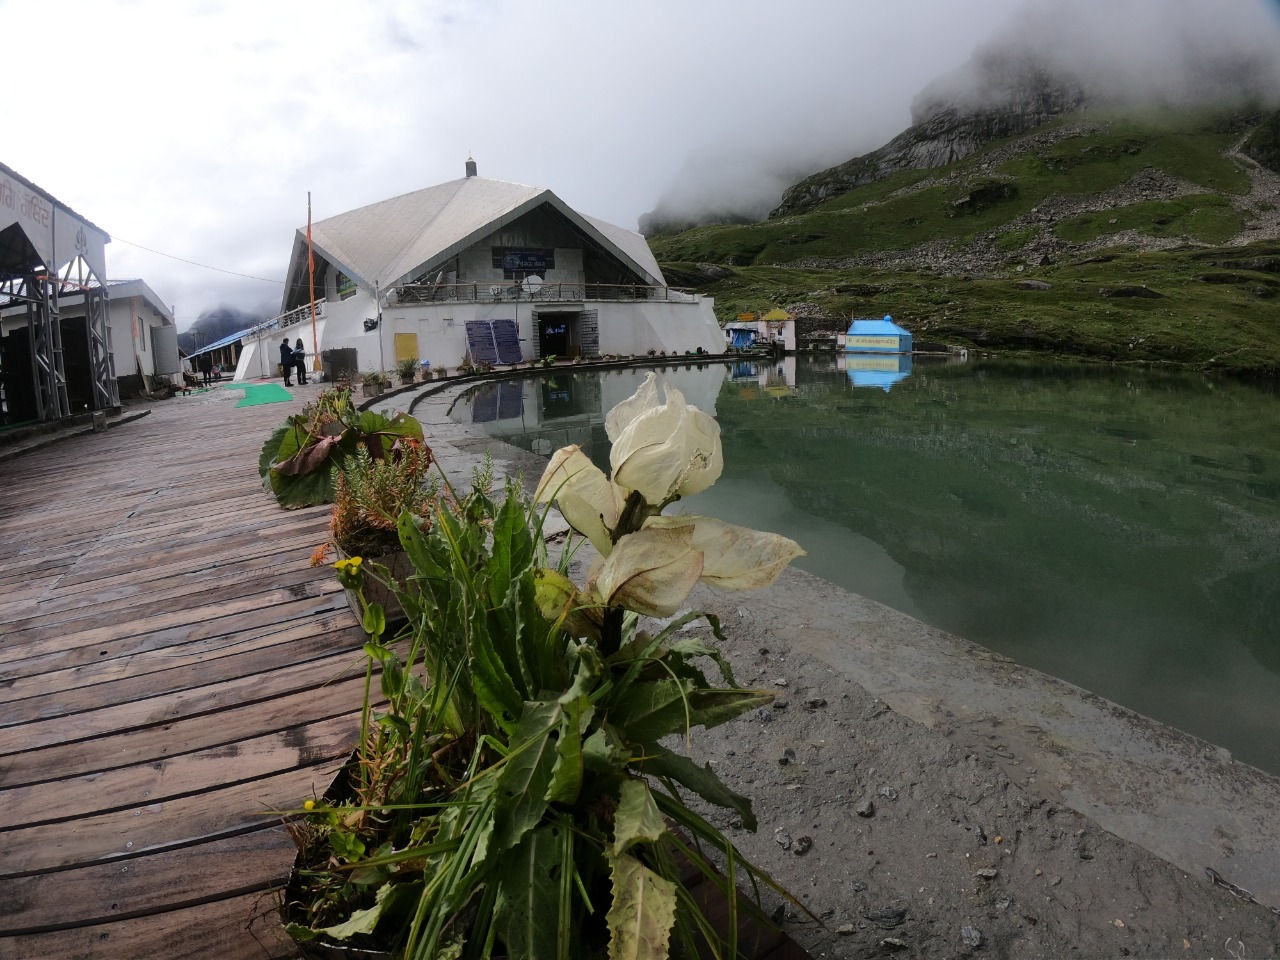 Flower blooming on side of a Hemkund lake with wooden path to houses with tin roof and distant mountain covered with green grass and fog covering the top of mountain